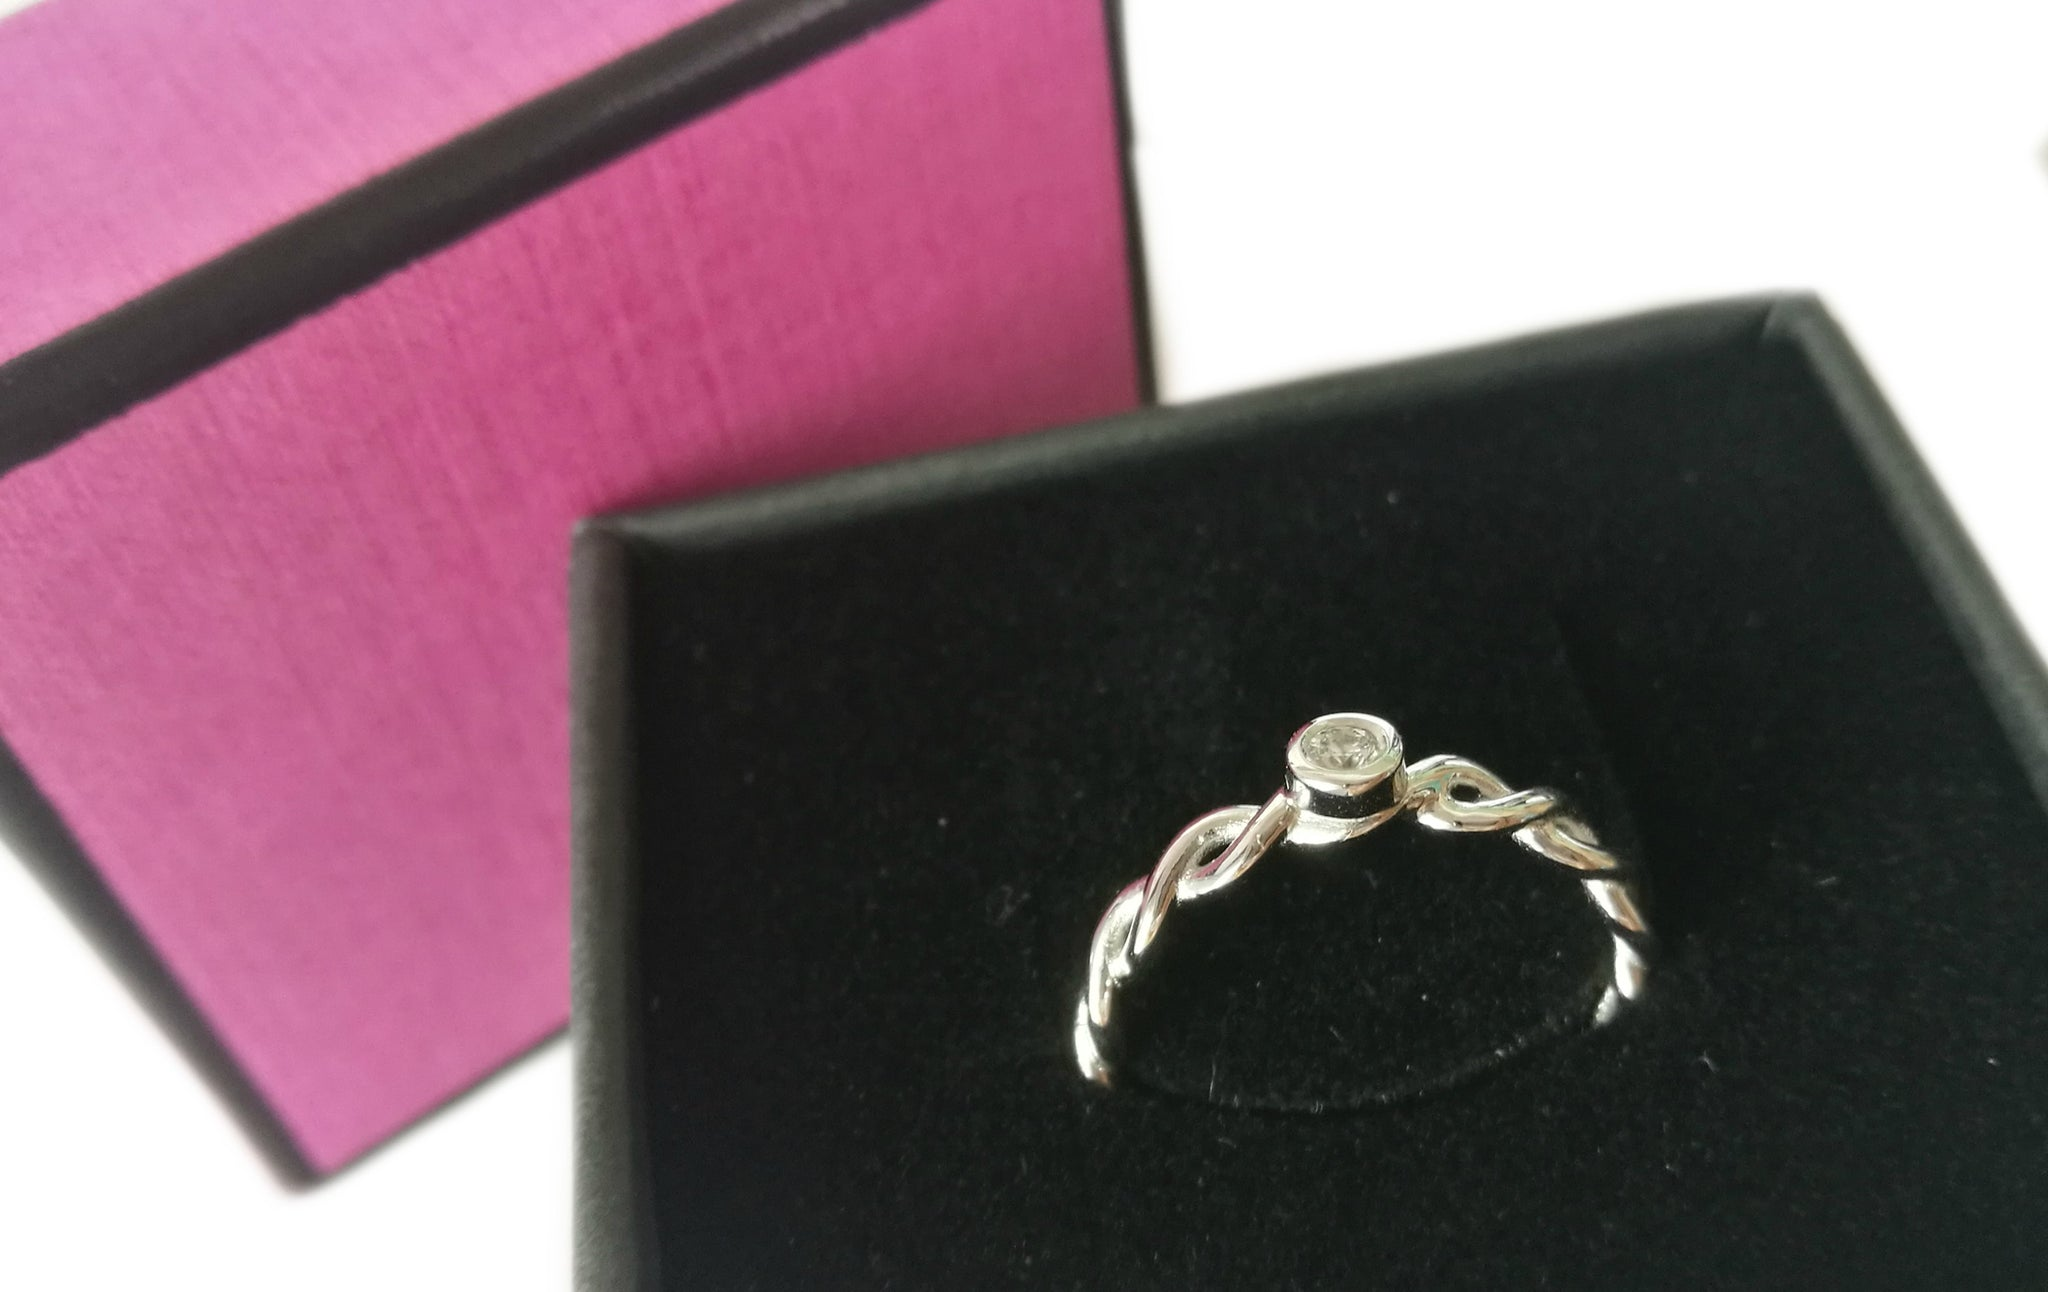 Brand New French 0.06ct Round Brilliant Diamond Engagement Ring in 18k White Gold